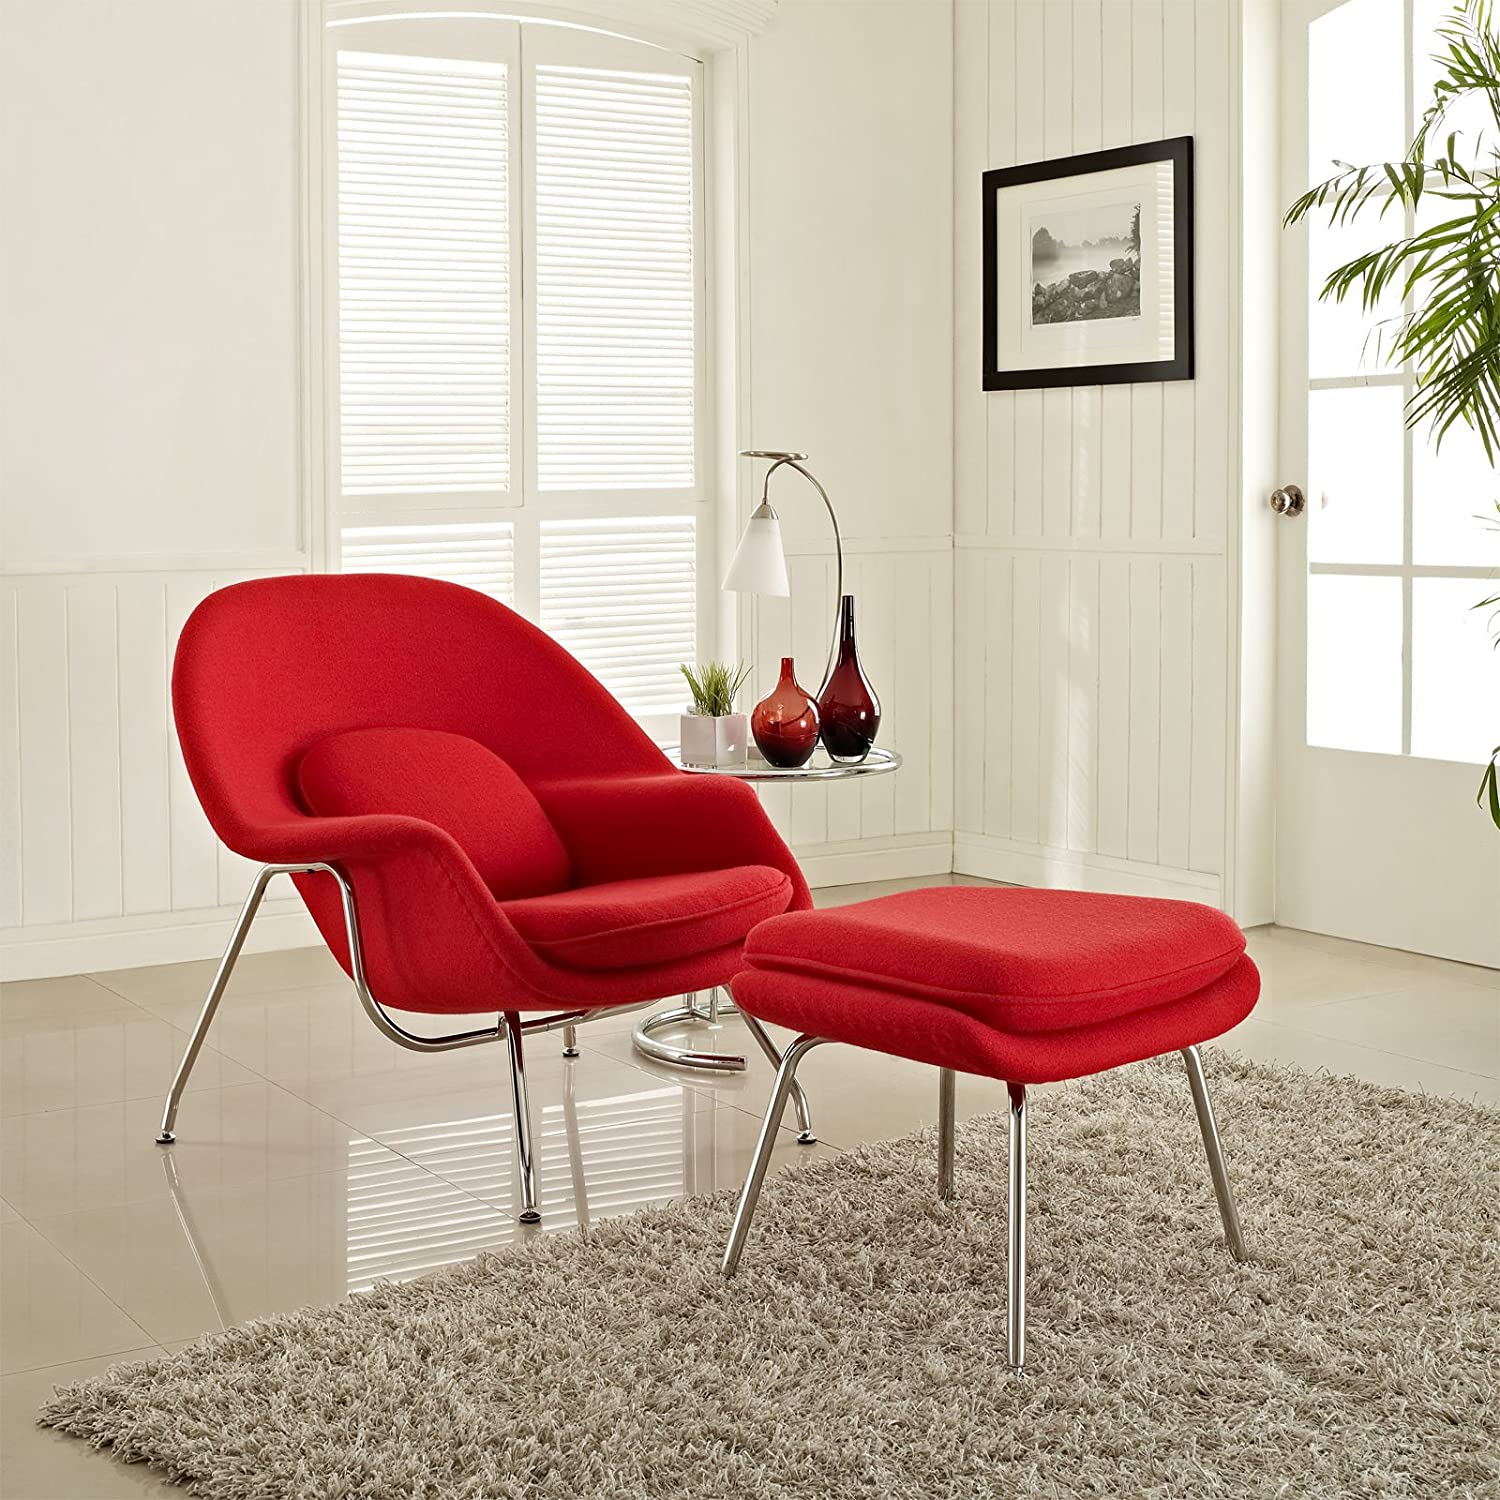 Womb chair living room - Amazon Com Modway Eero Saarinen Style Womb Chair And Ottoman Set In Red Kitchen Dining